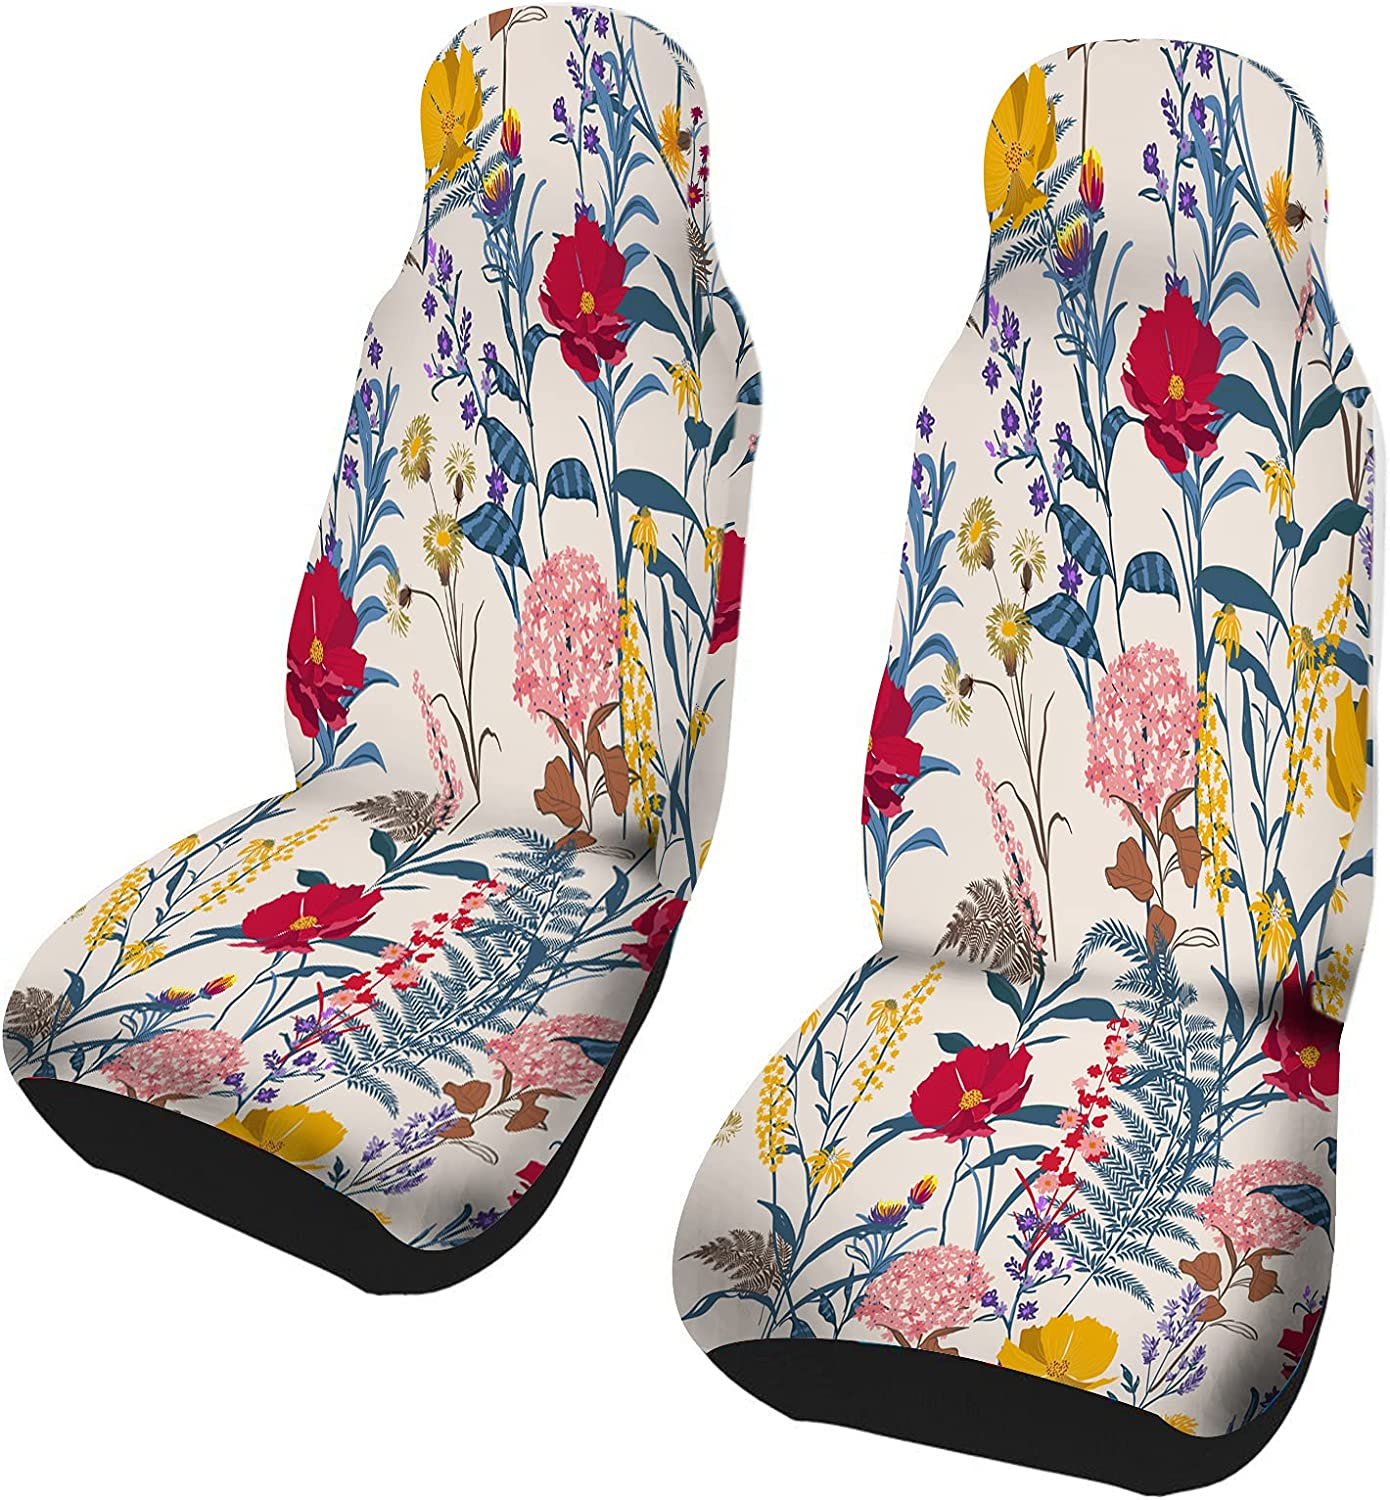 Bright Floral Pattern Same day shipping in The Inventory cleanup selling sale Many Kind Mot Flowers. of Botanical